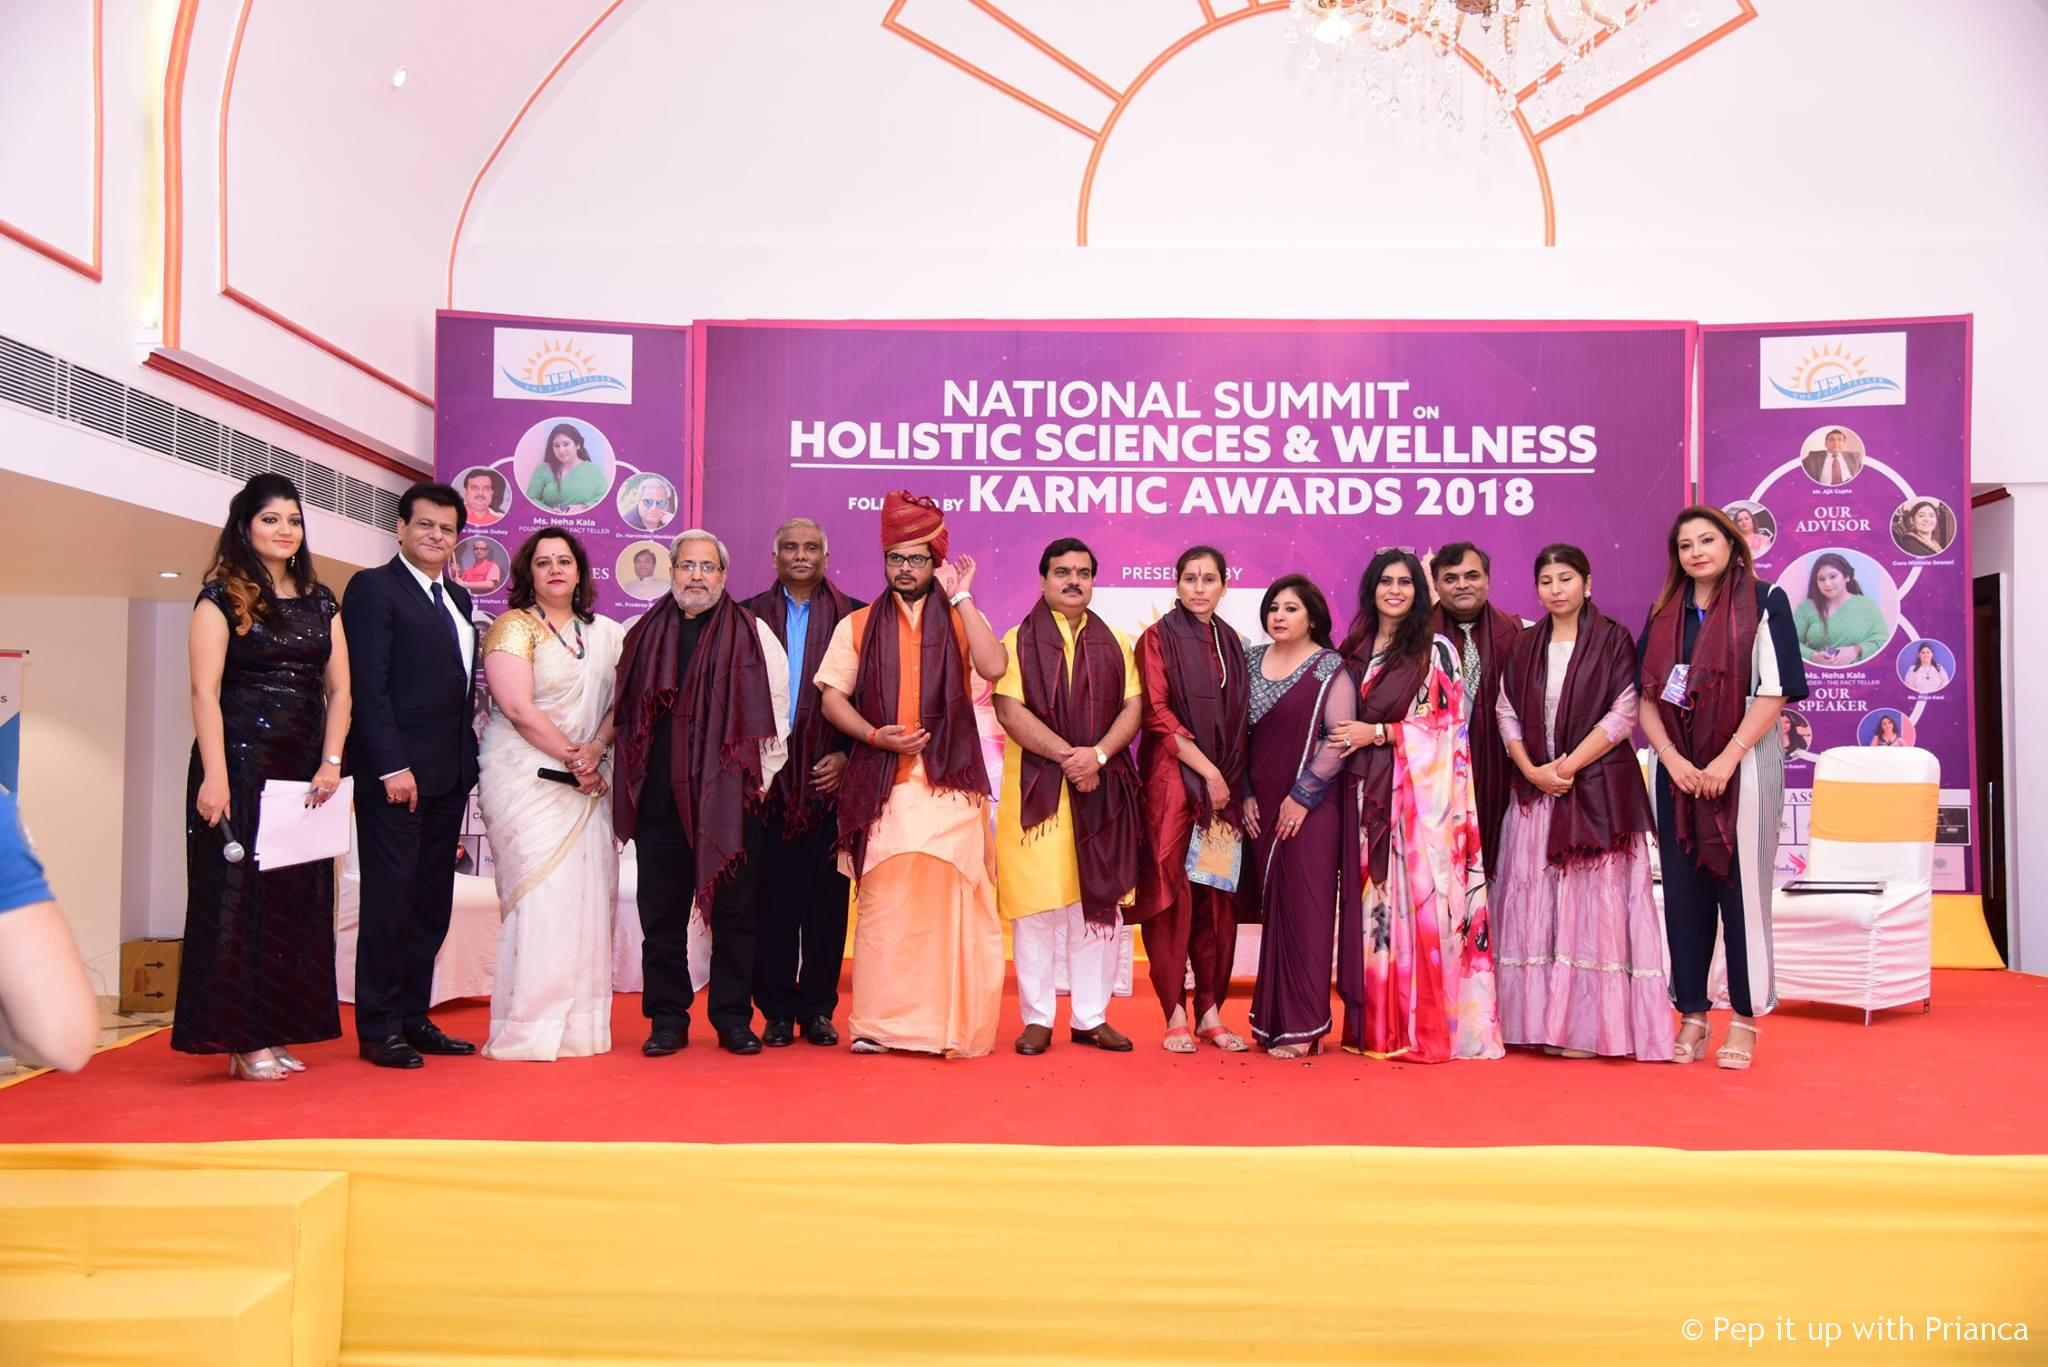 43522868 275588453074894 5574970839876501504 o - The Fact Teller Magazine: National Summit on Holistic Sciences and Wellness 2018